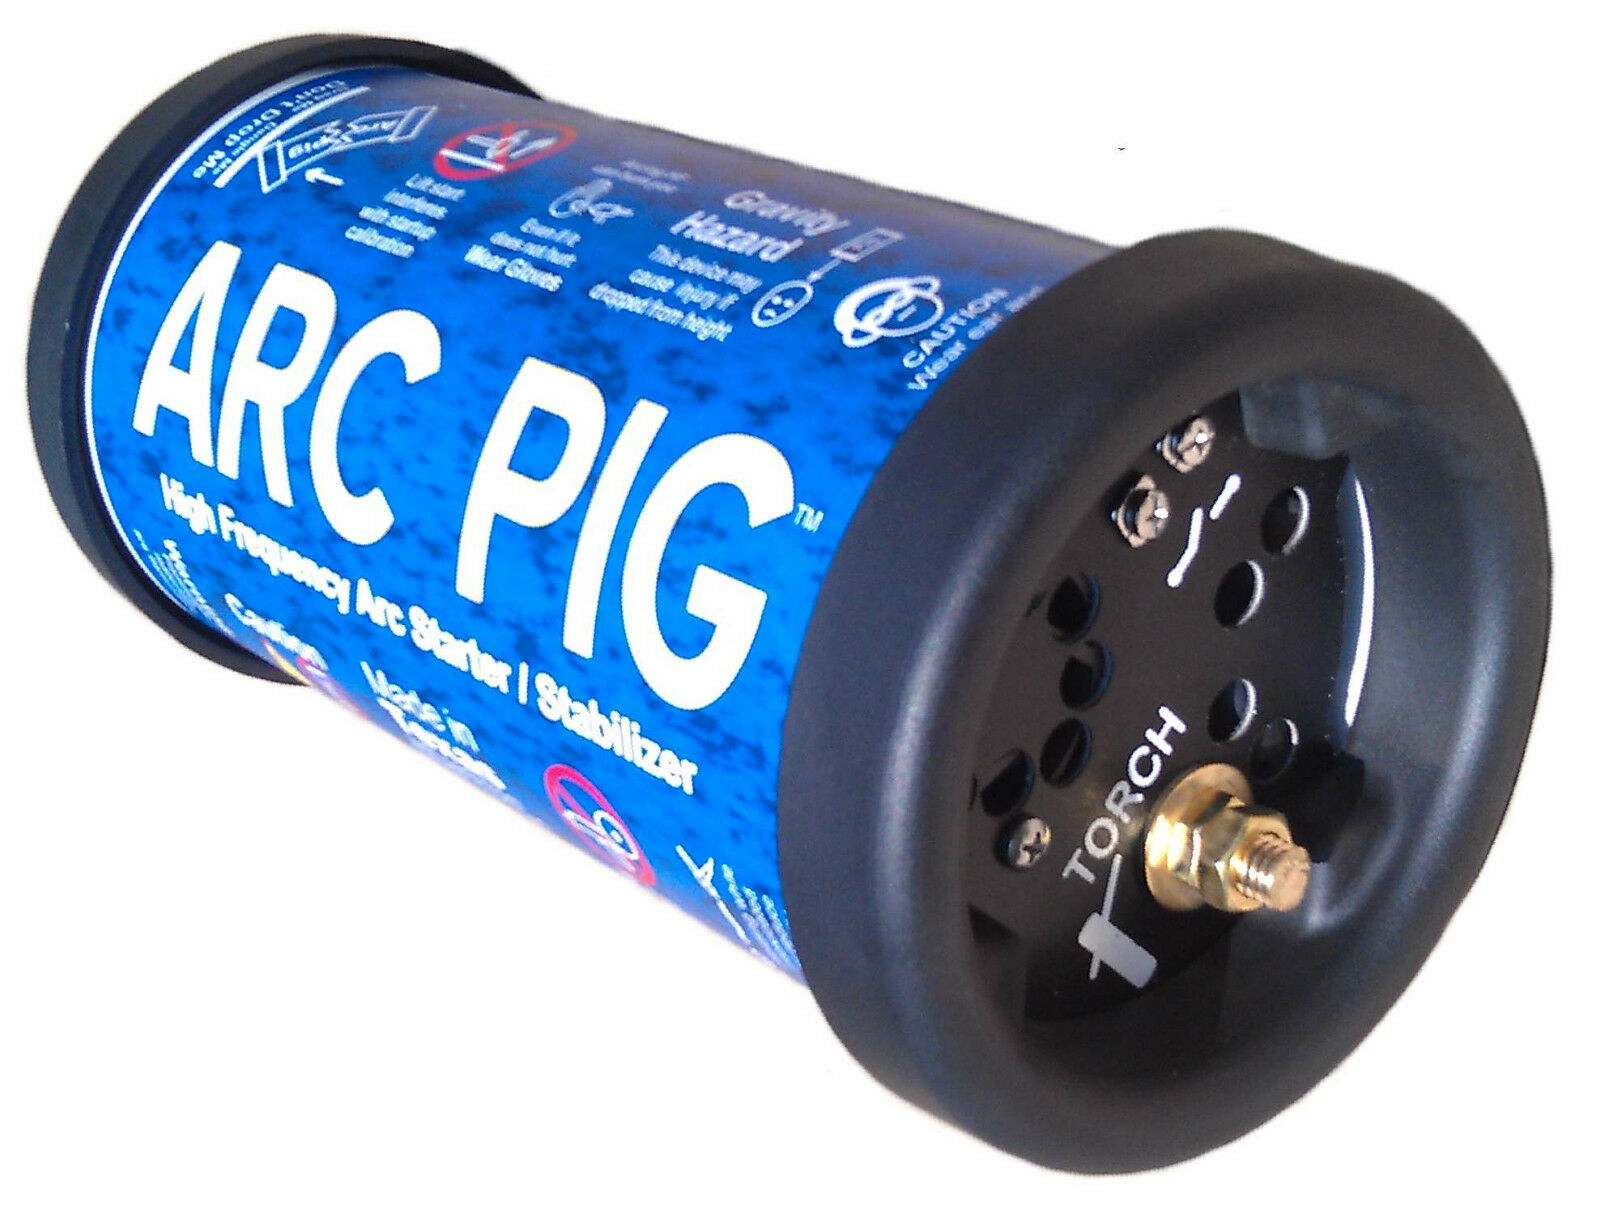 Arc Pig. Buy it now for 349.00